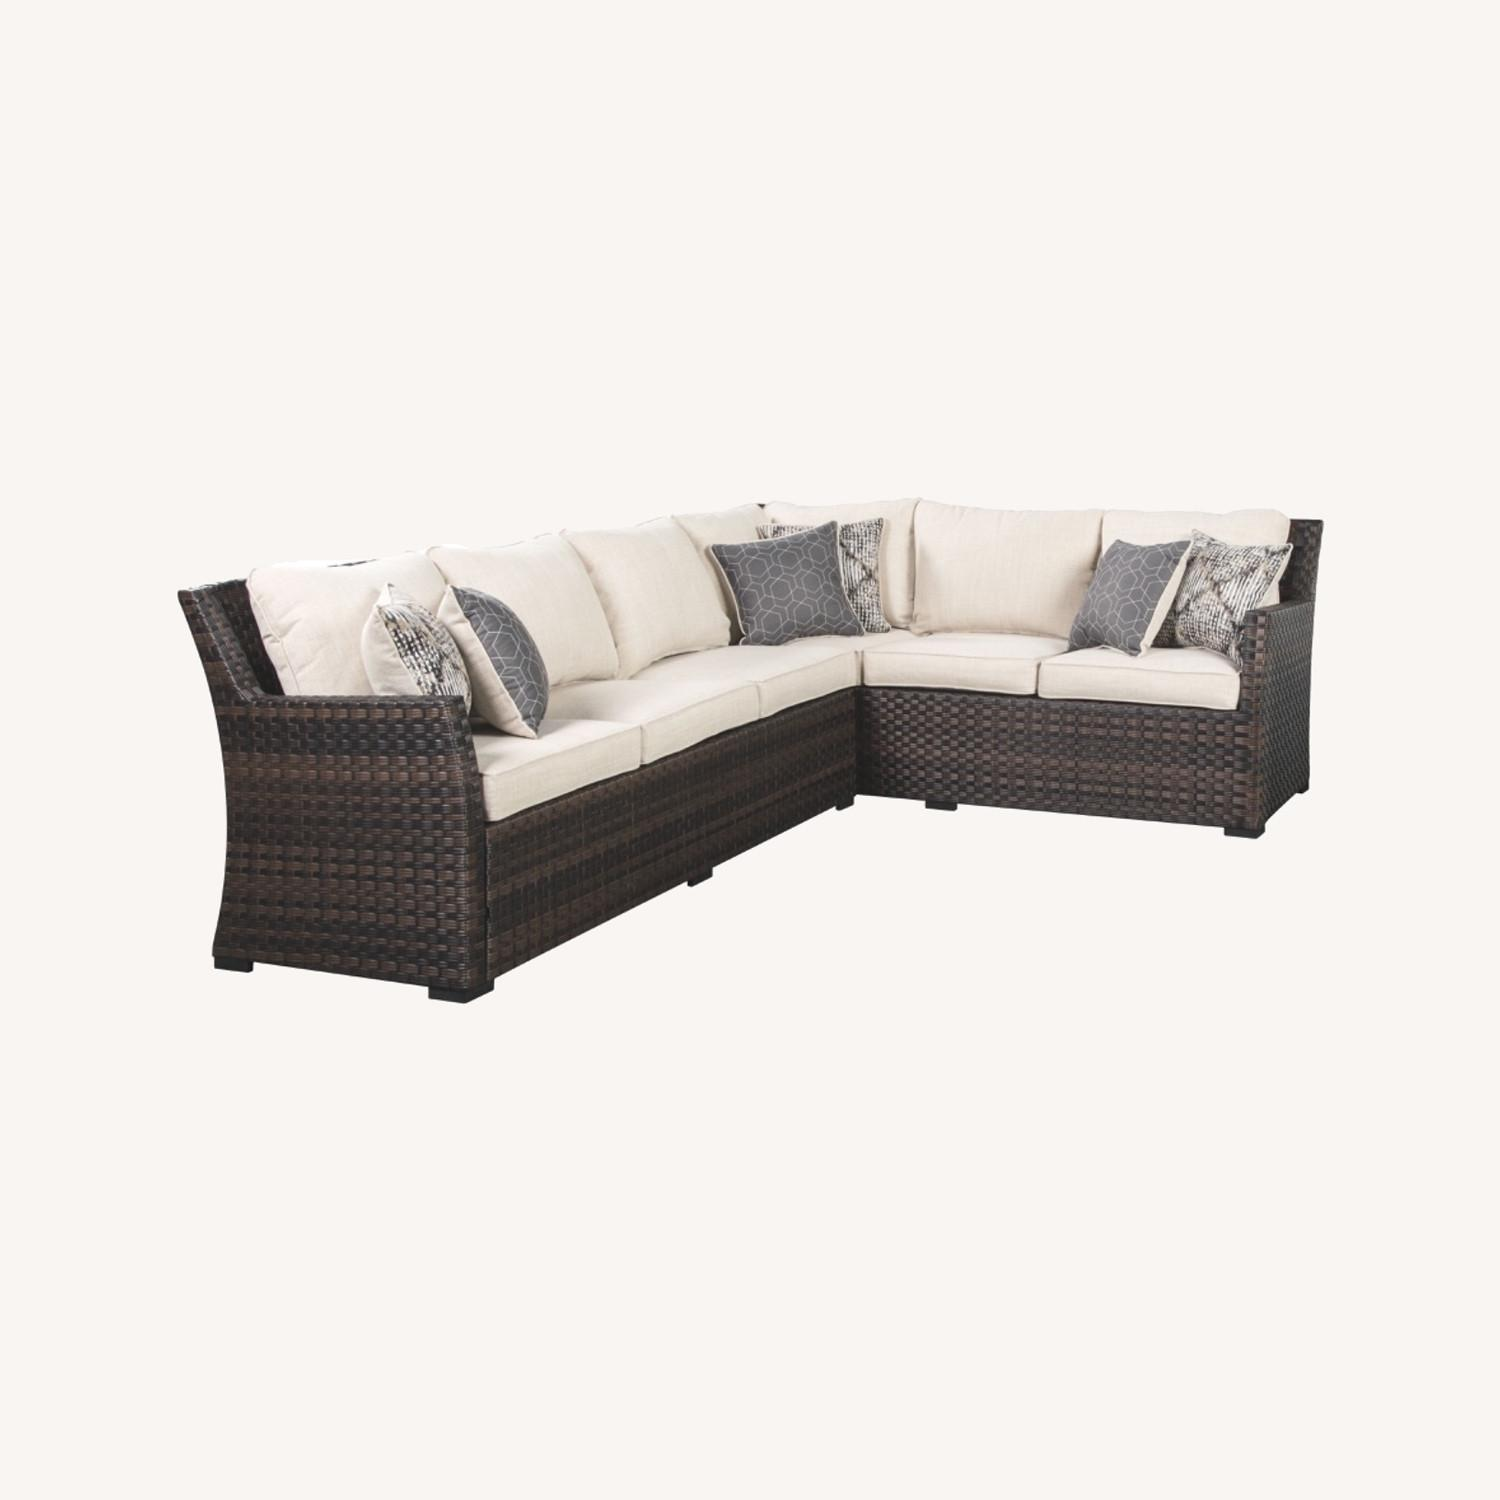 Ashley Furniture Resin Wicker Sectional - image-0